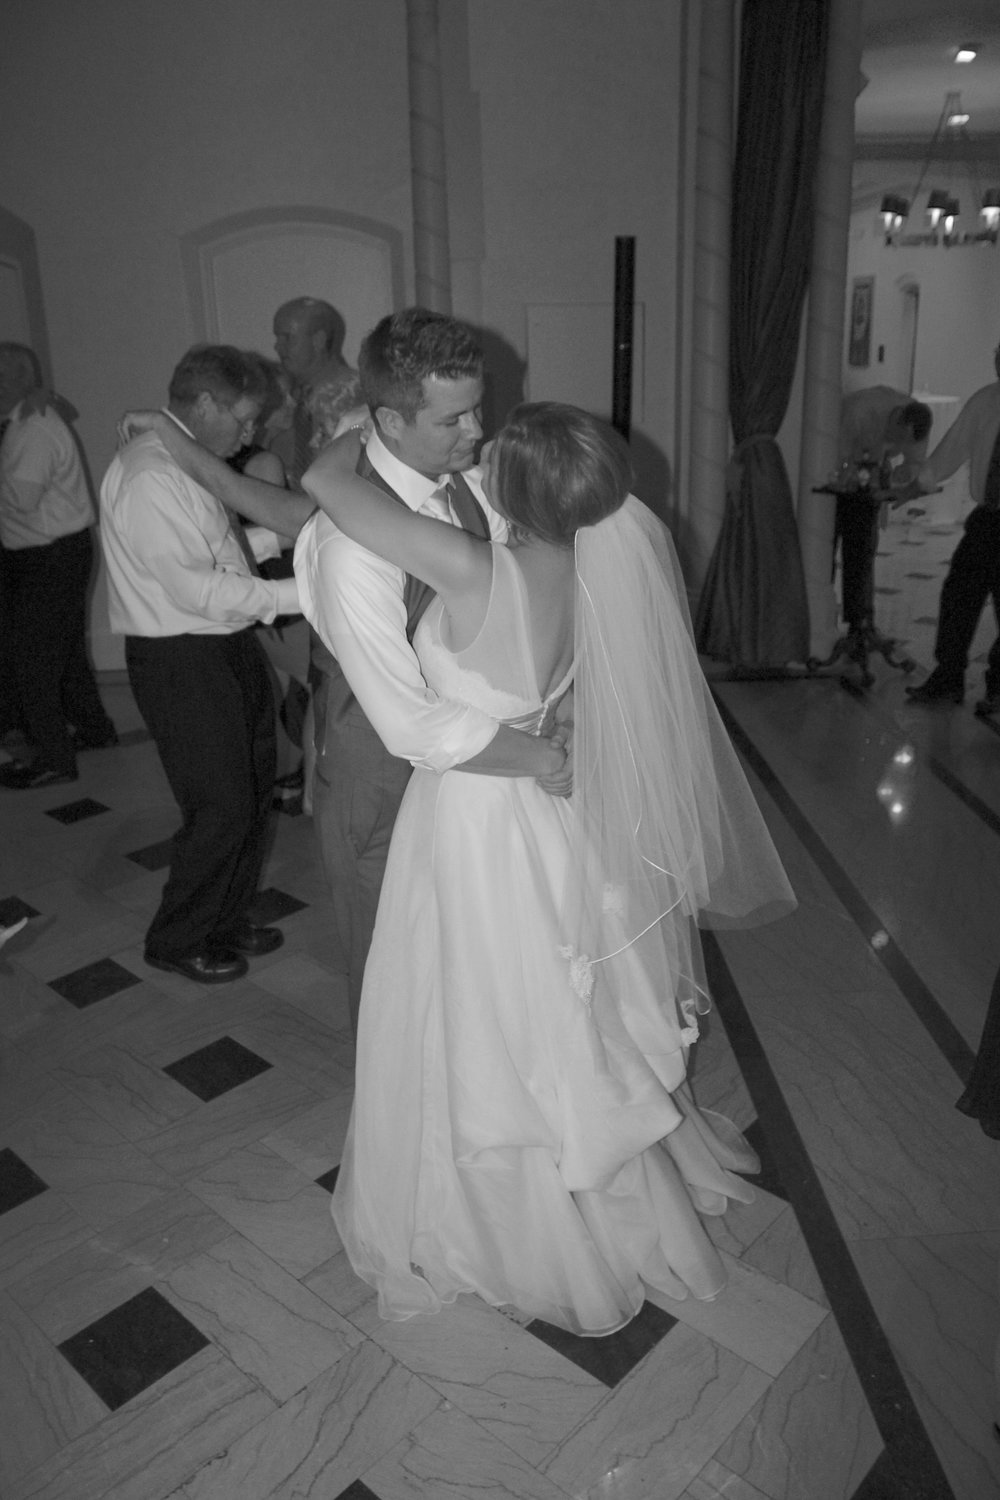 Dance every dance together so you'll have memories like this